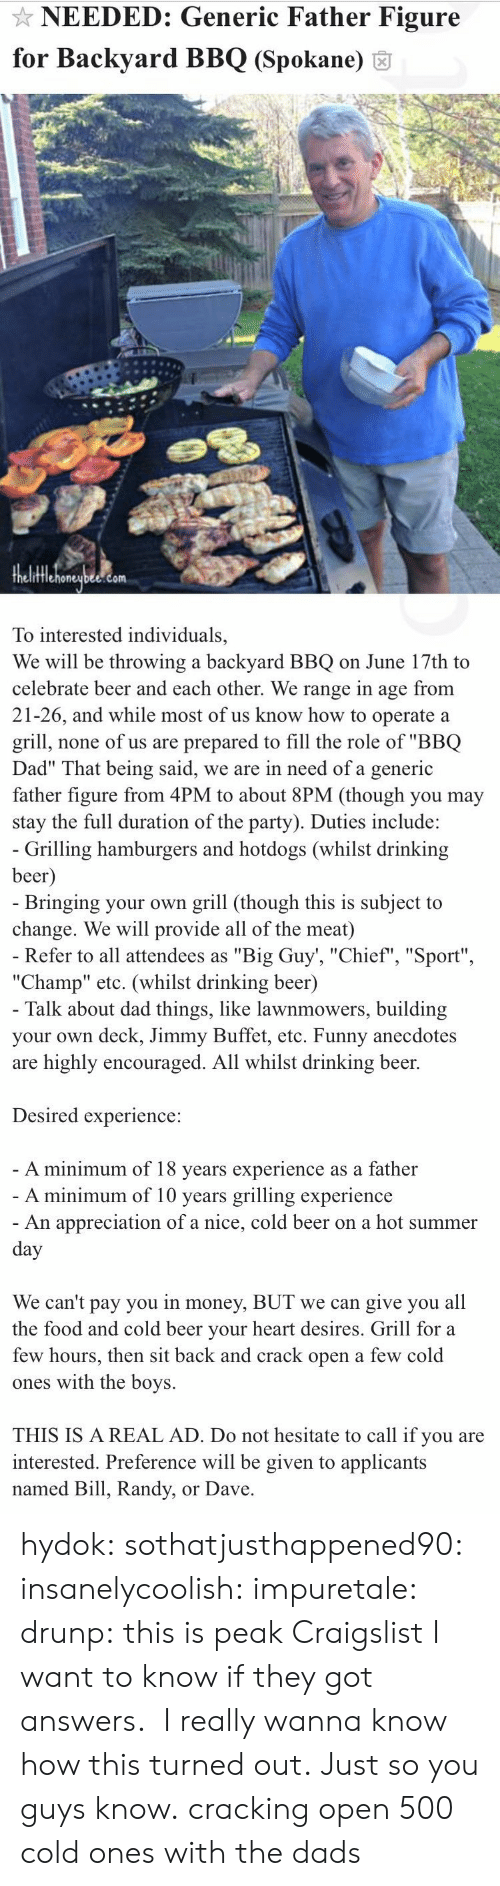 """Beer, Craigslist, and Dad: NEEDED: Generic Father Figure  for Backyard BBQ (Spokane) 6  fflehoneubee.com  To interested individuals,  We will be throwing a backyard BBQ on June 17th to  celebrate beer and each other. We range in age from  21-26, and while most of us know how to operate a  grill, none of us are prepared to fill the role of """"BBQ  Dad"""" That being said, we are in need of a generic  father figure from 4PM to about 8PM (though you may  stay the full duration of the party). Duties include:   Grilling hamburgers and hotdogs (whilst drinking  beer  Bringing your own grill (though this is subject to  change. We will provide all of the meat)  Refer to all attendees as """"Big Guy', """"Chief"""", """"Sport""""  """"Champ"""" etc. (whilst drinking beer)  Talk about dad things, like lawnmowers, building  your own deck, Jimmy Buffet, etc. Funny anecdotes  are highly encouraged. All whilst drinking beer.  Desired experience:  A minimum of 18 vears experience as a father  A minimum of 10 years grilling experience  An appreciation of a nice, cold beer on a hot summer  We can't pay you in money, BUT we can give you all  the food and cold beer vour heart desires. Grill for a  few hours, then sit back and crack open a few cold  ones with the boys.  THIS IS A REAL AD. Do not hesitate to call if you are  interested. Preference will be given to applicants  named Bill, Randy, or Dave hydok:  sothatjusthappened90:  insanelycoolish:   impuretale:  drunp: this is peak Craigslist I want to know if they got answers.  I really wanna know how this turned out.               Just so you guys know.  cracking open 500 cold ones with the dads"""